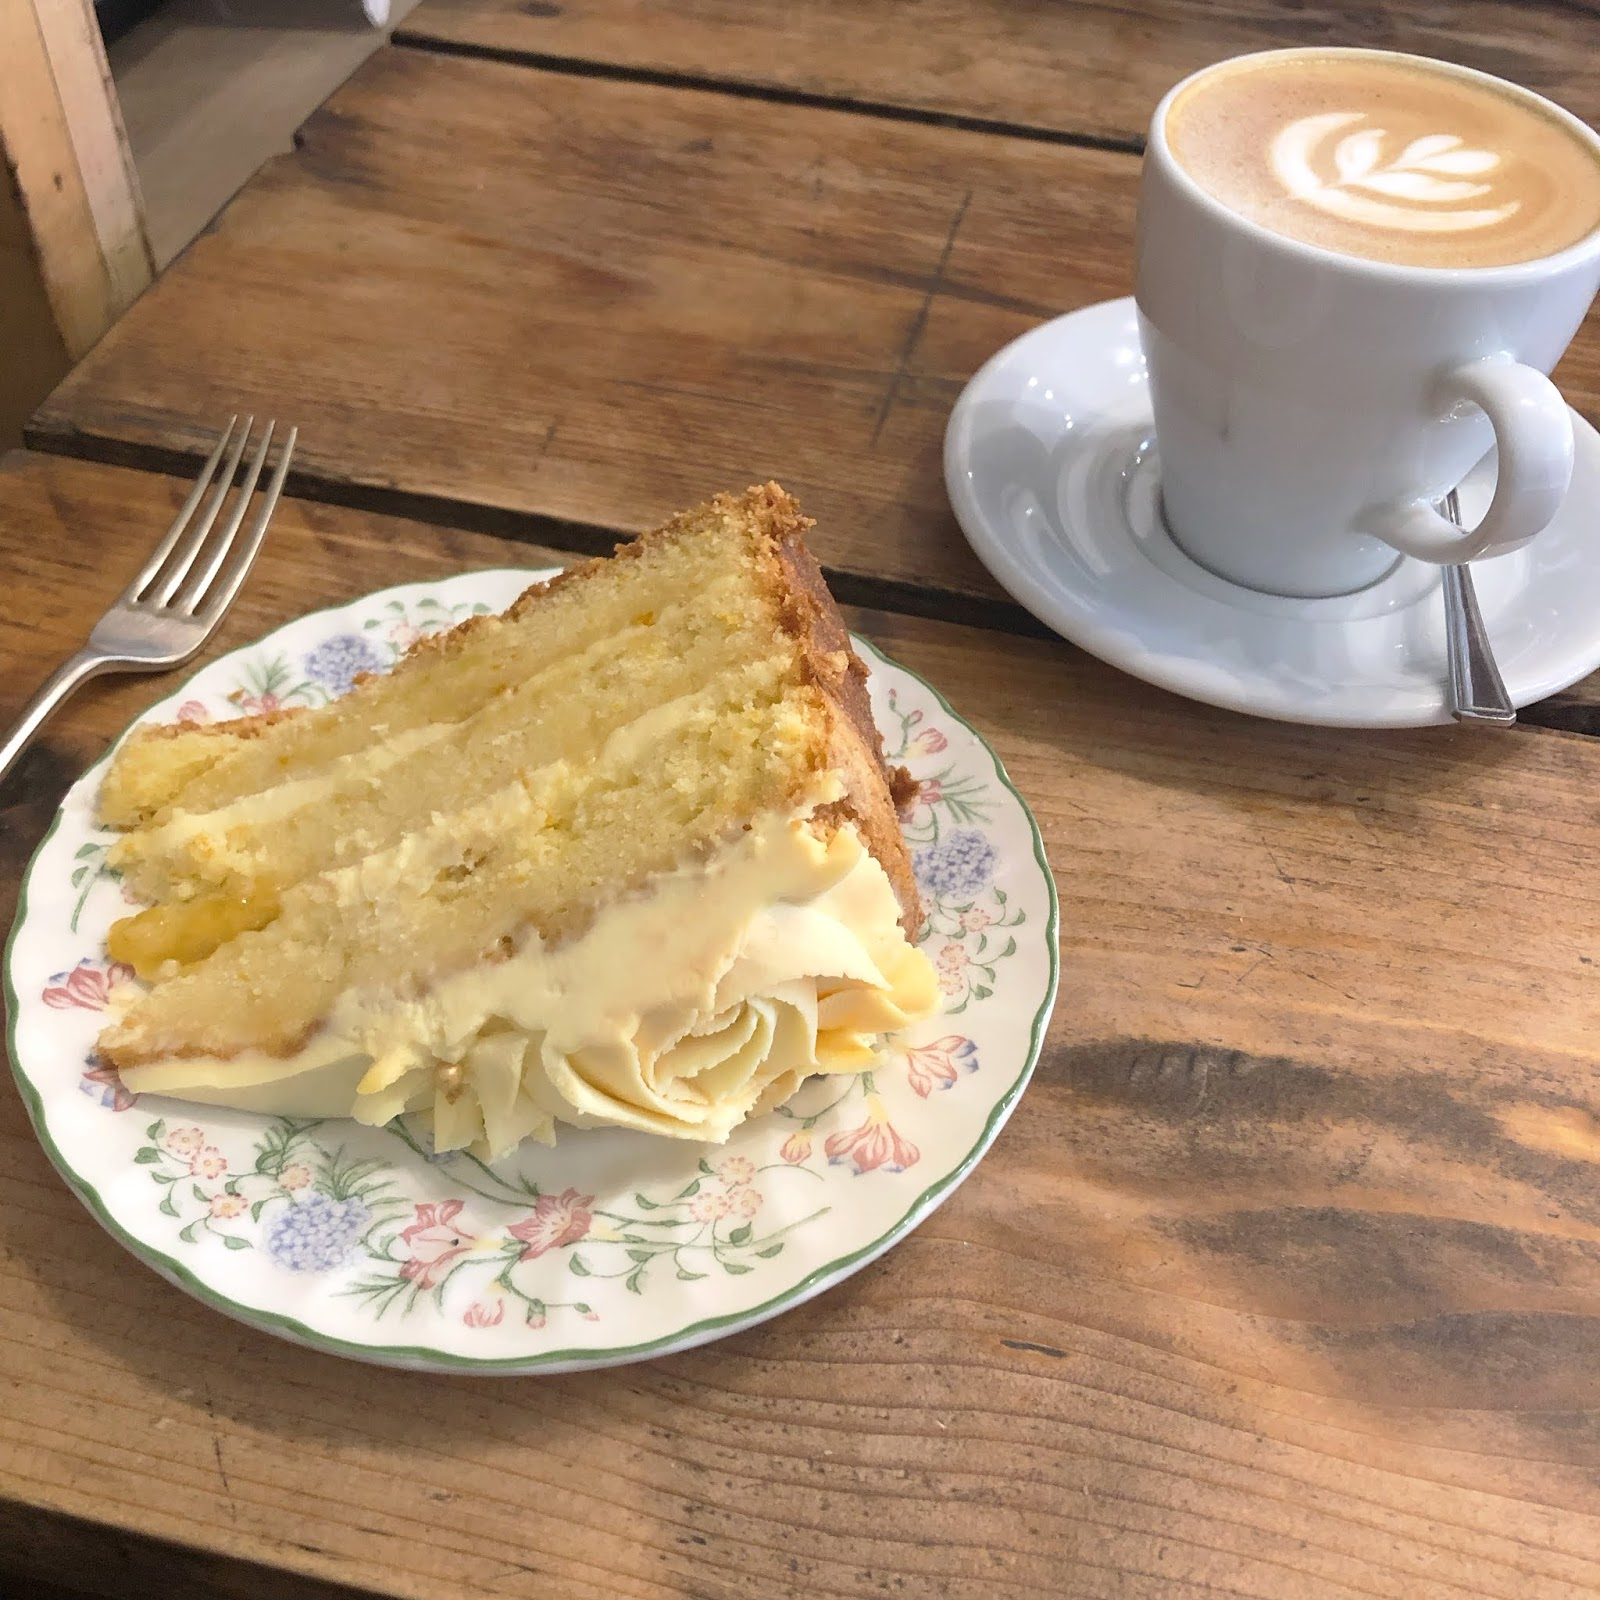 November Days - Cake at Cafe 1901